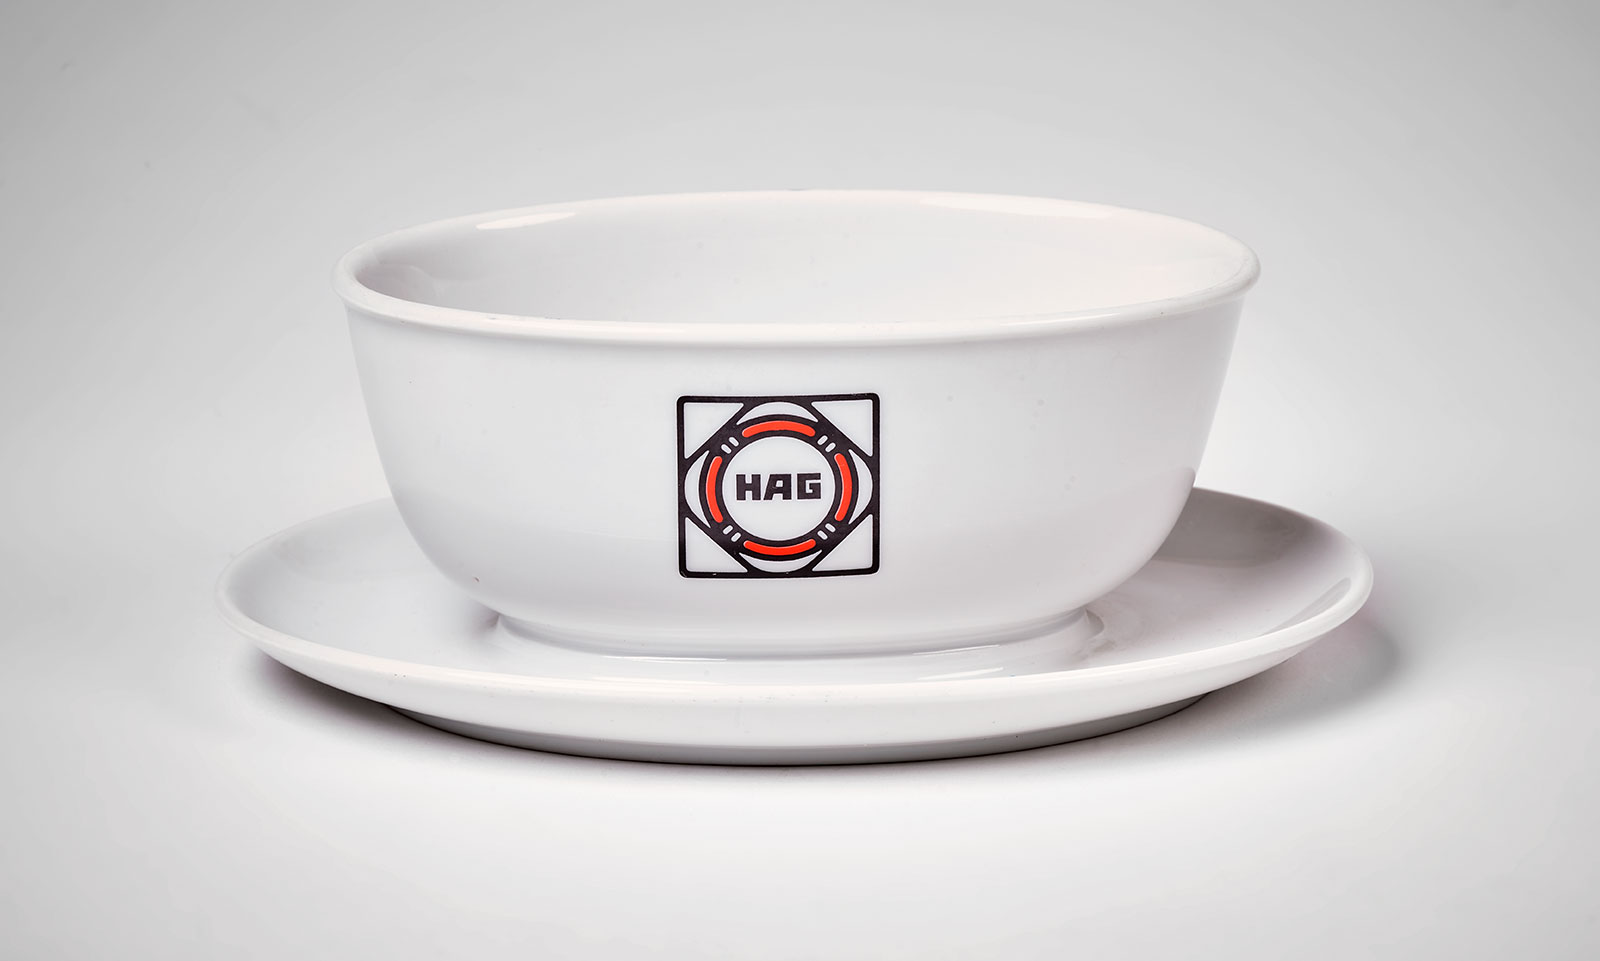 Kaffee Hag gravy boat and saucer